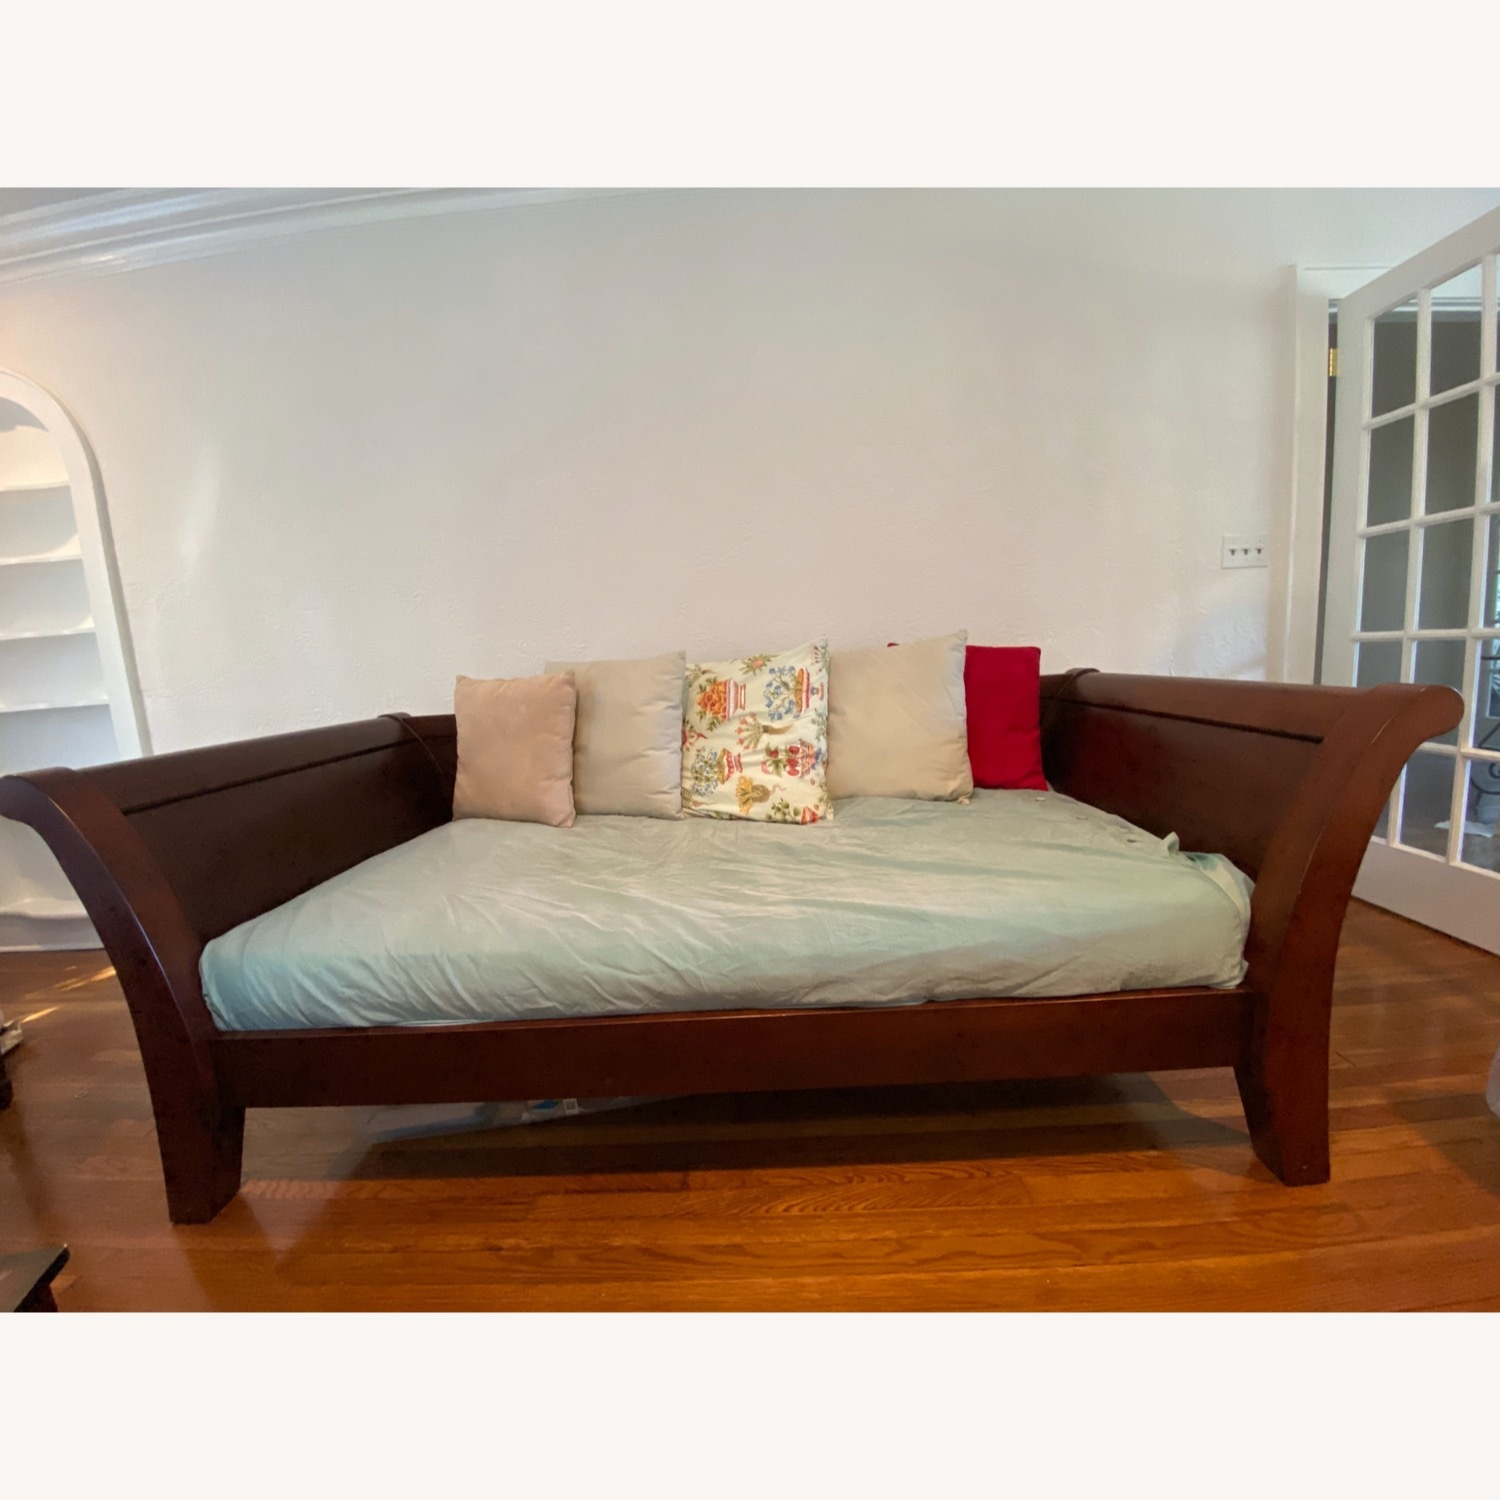 Impeccable Condition Sleigh Day bed - image-1